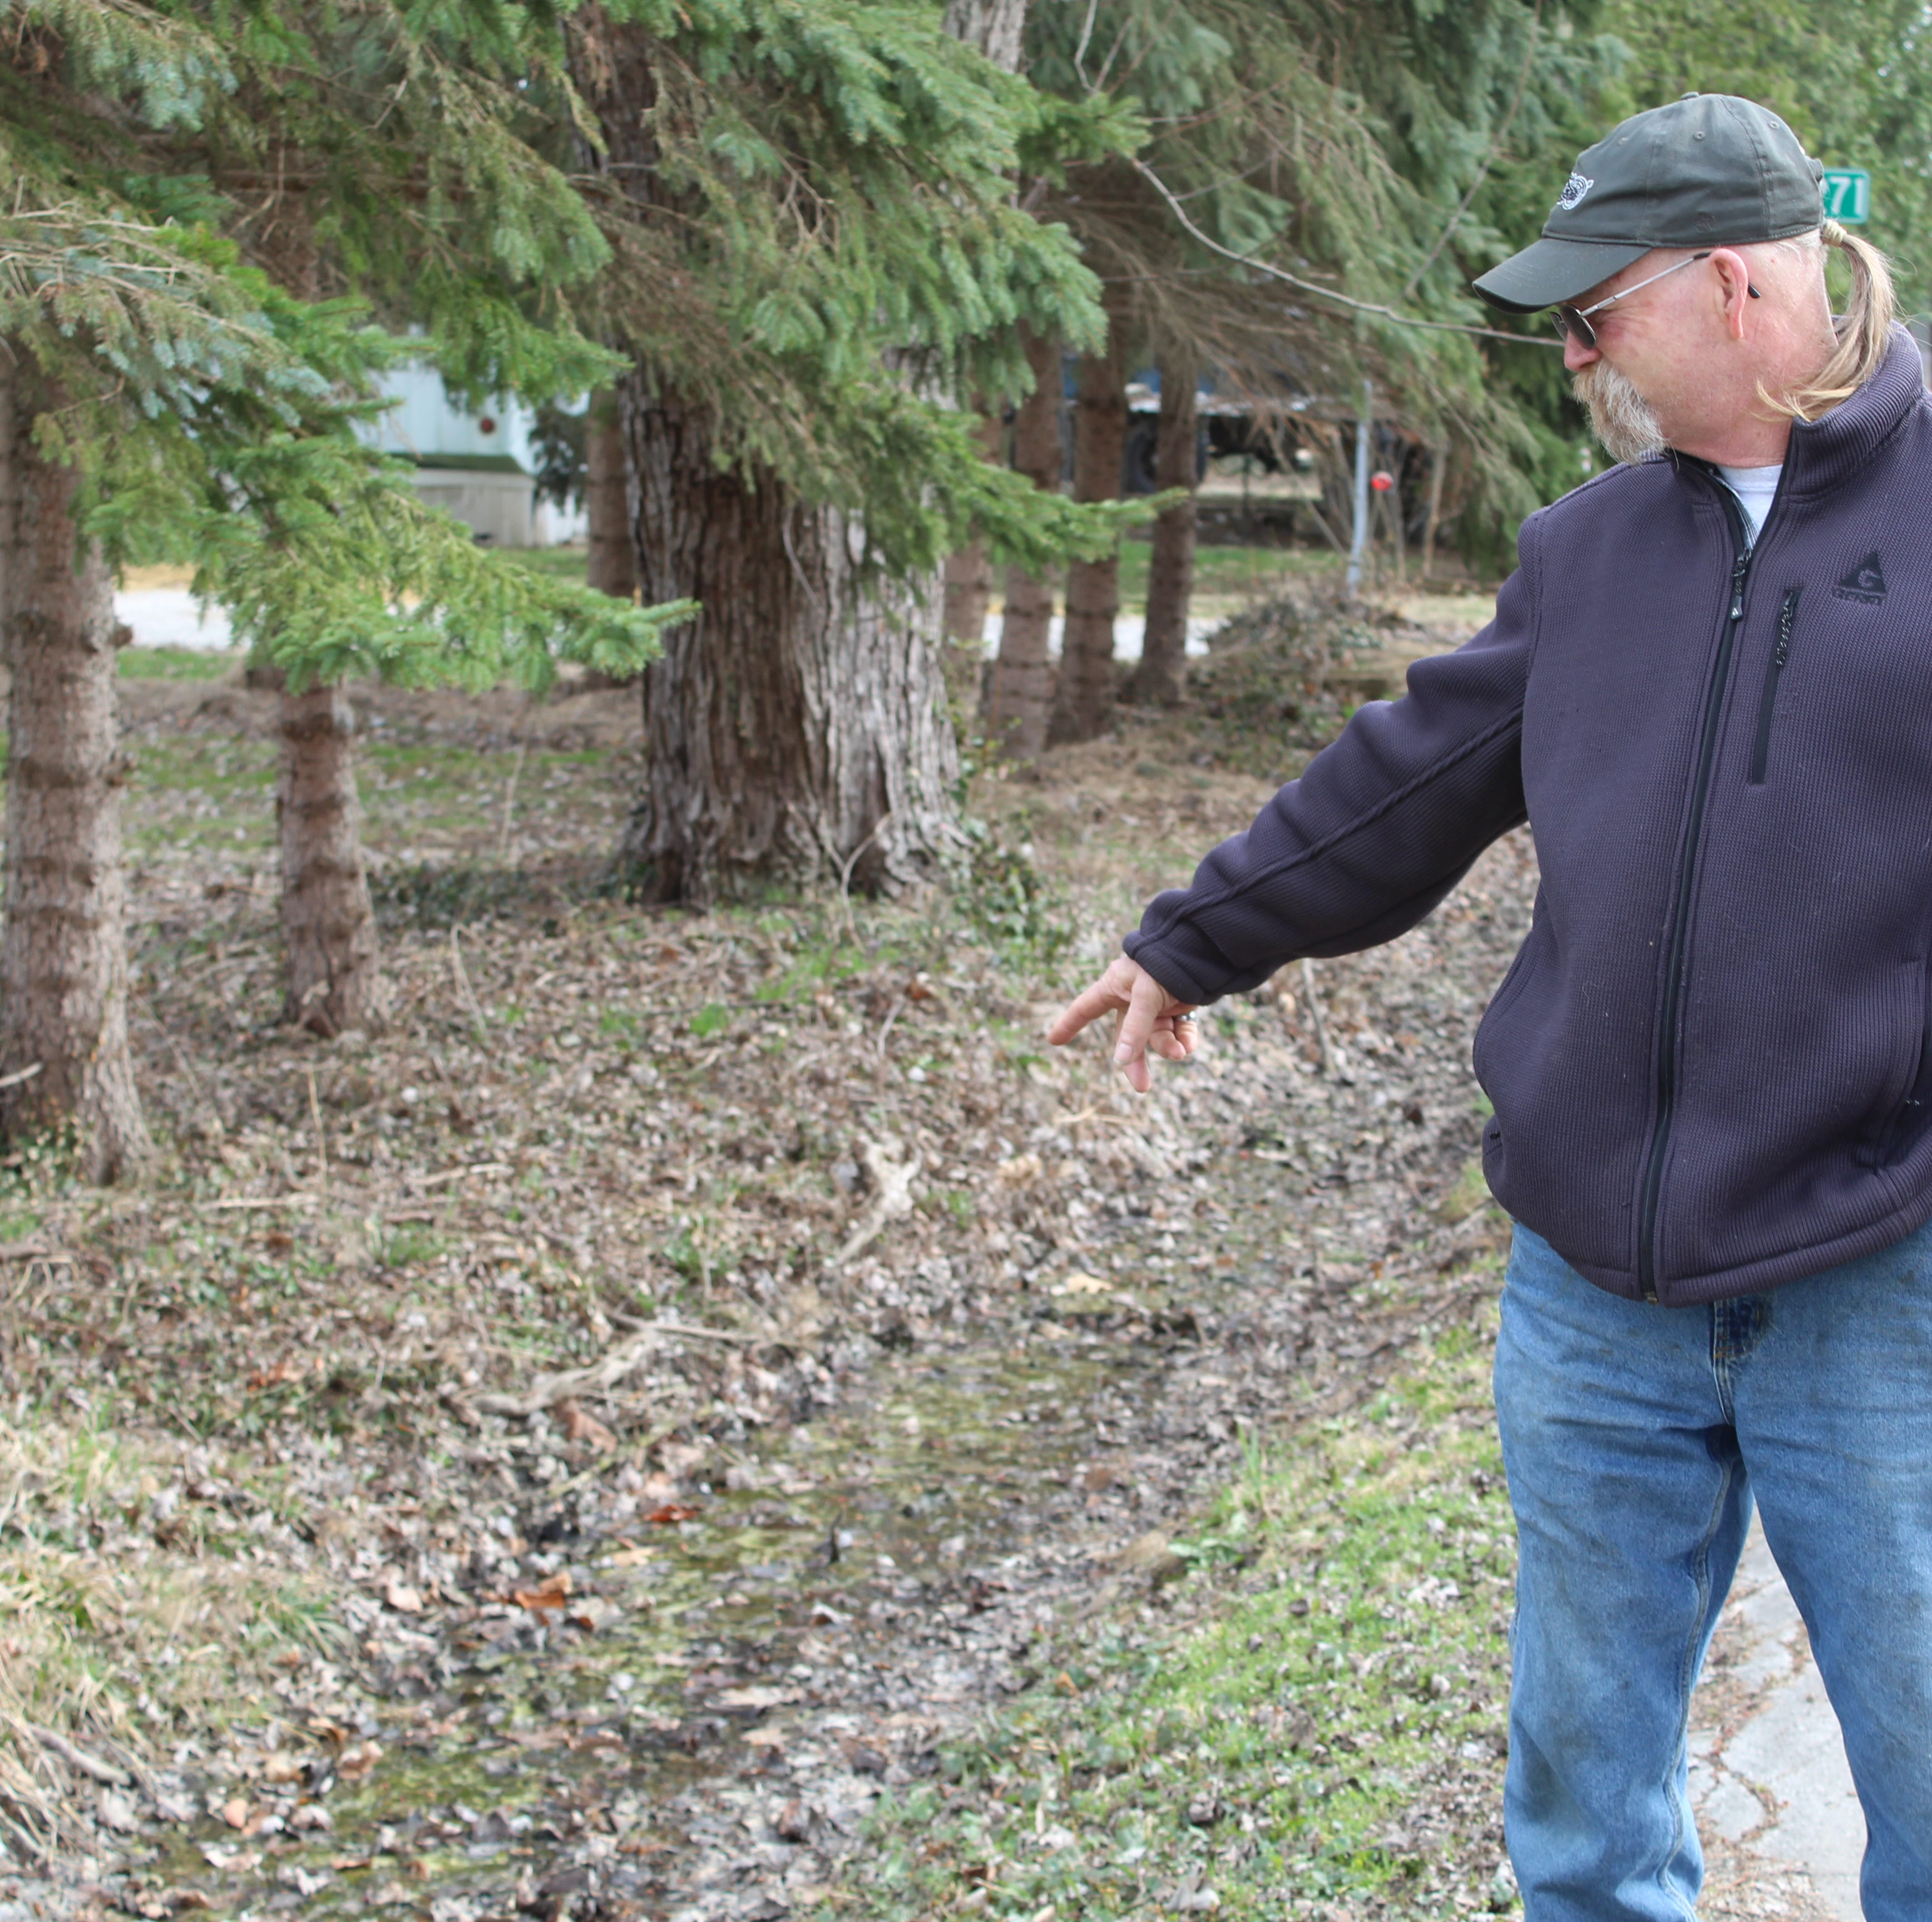 $2.4M sewer project will clean up Wightman's Grove